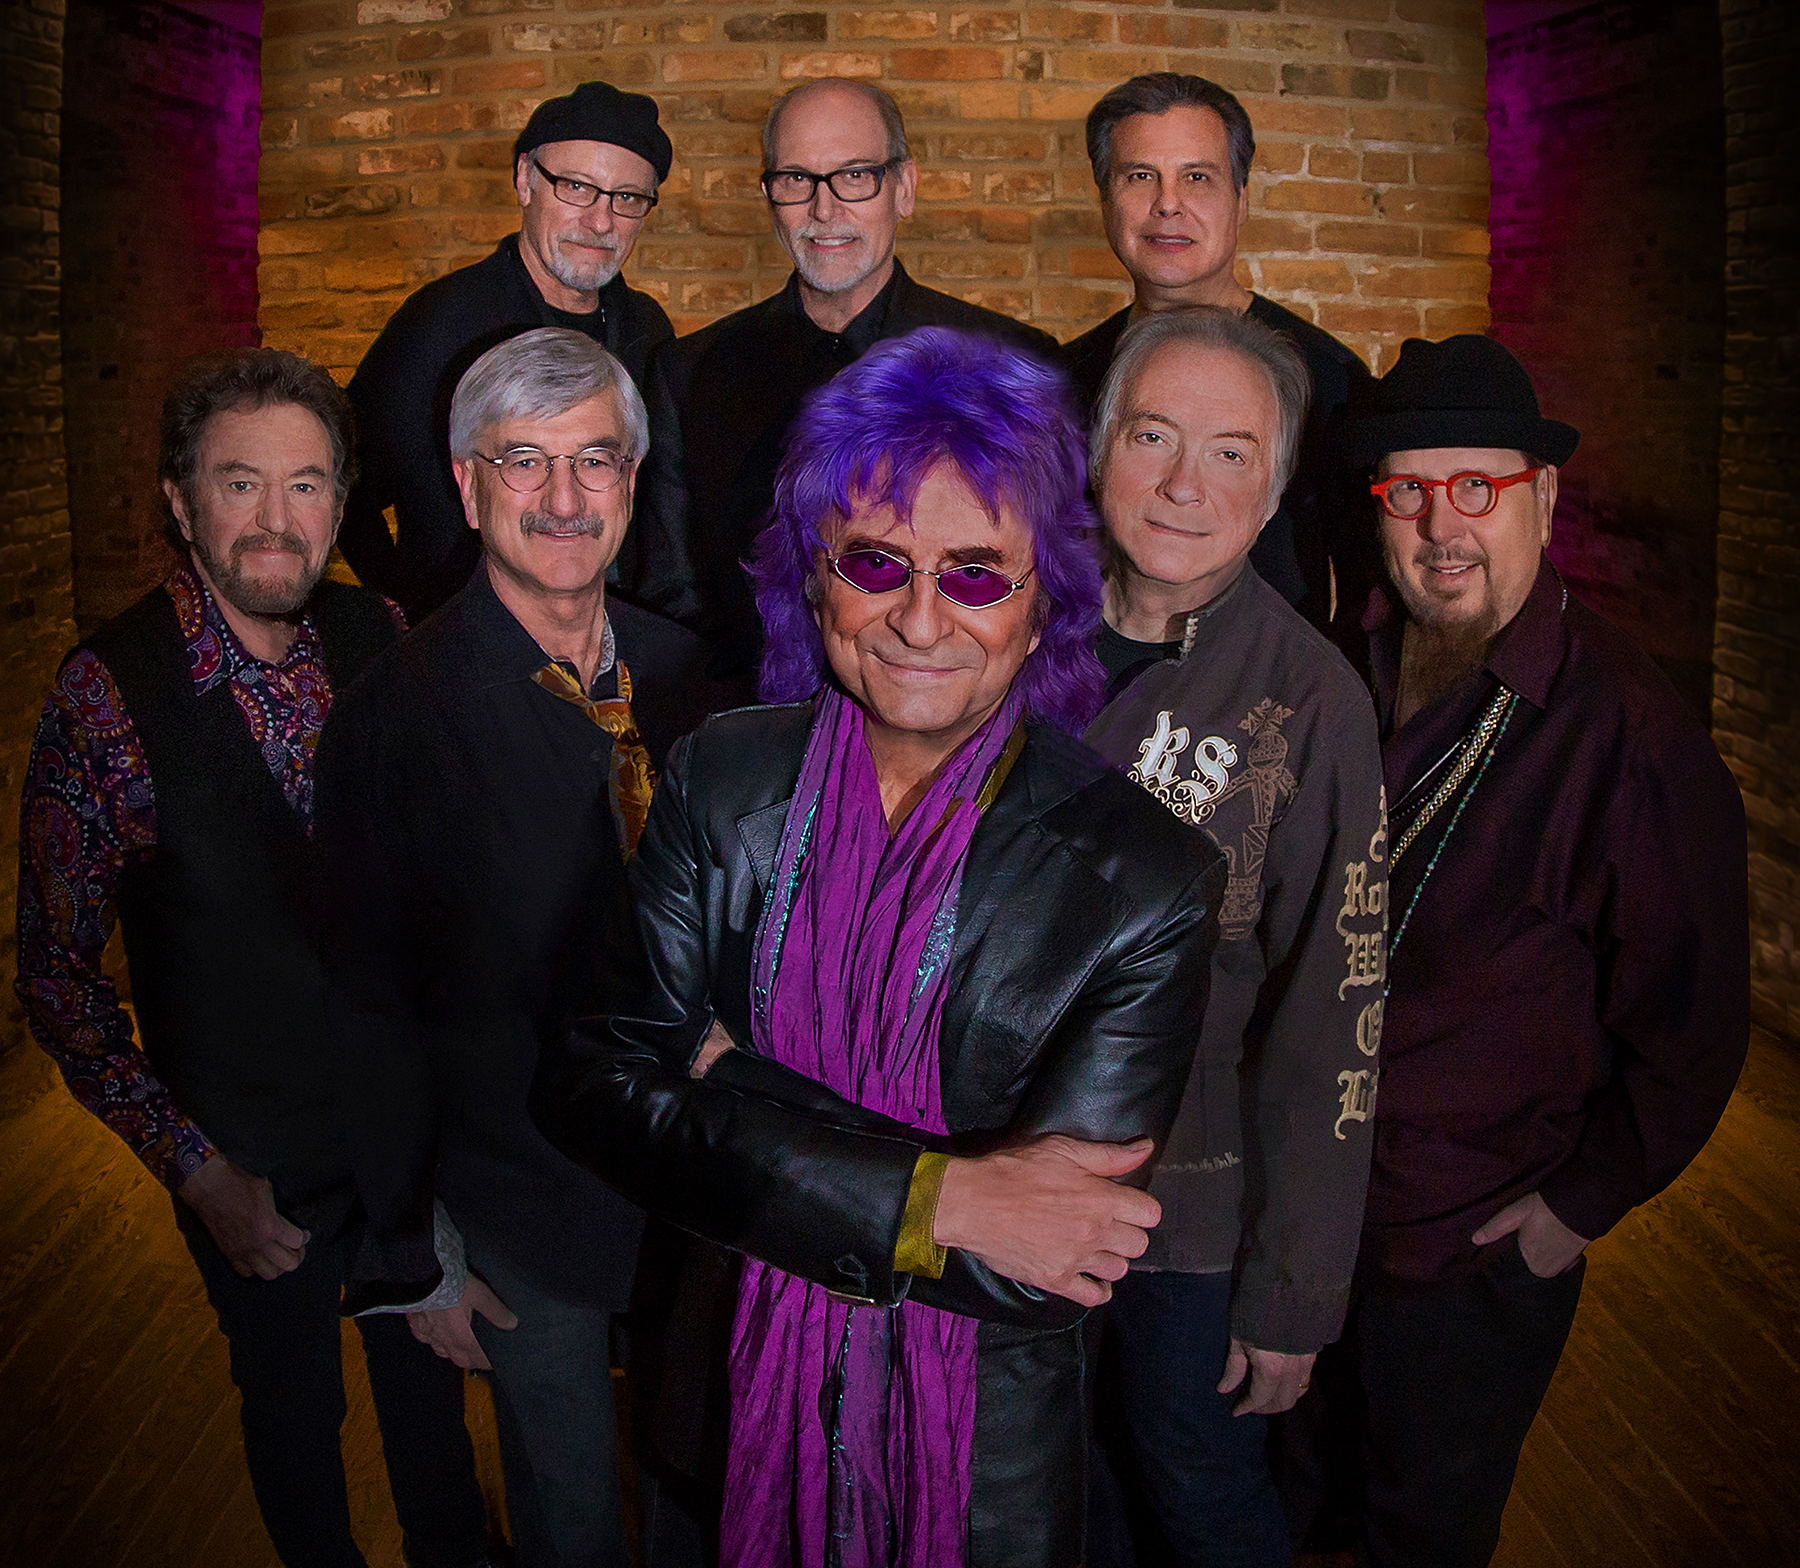 The Ides of March — (front row, from left): Mike Borch, Bob Bergland, Jim Peterik, Larry Millas and Scott May. Back row (from left): Steve Eisen, Tim Bales and Henry Salgado.